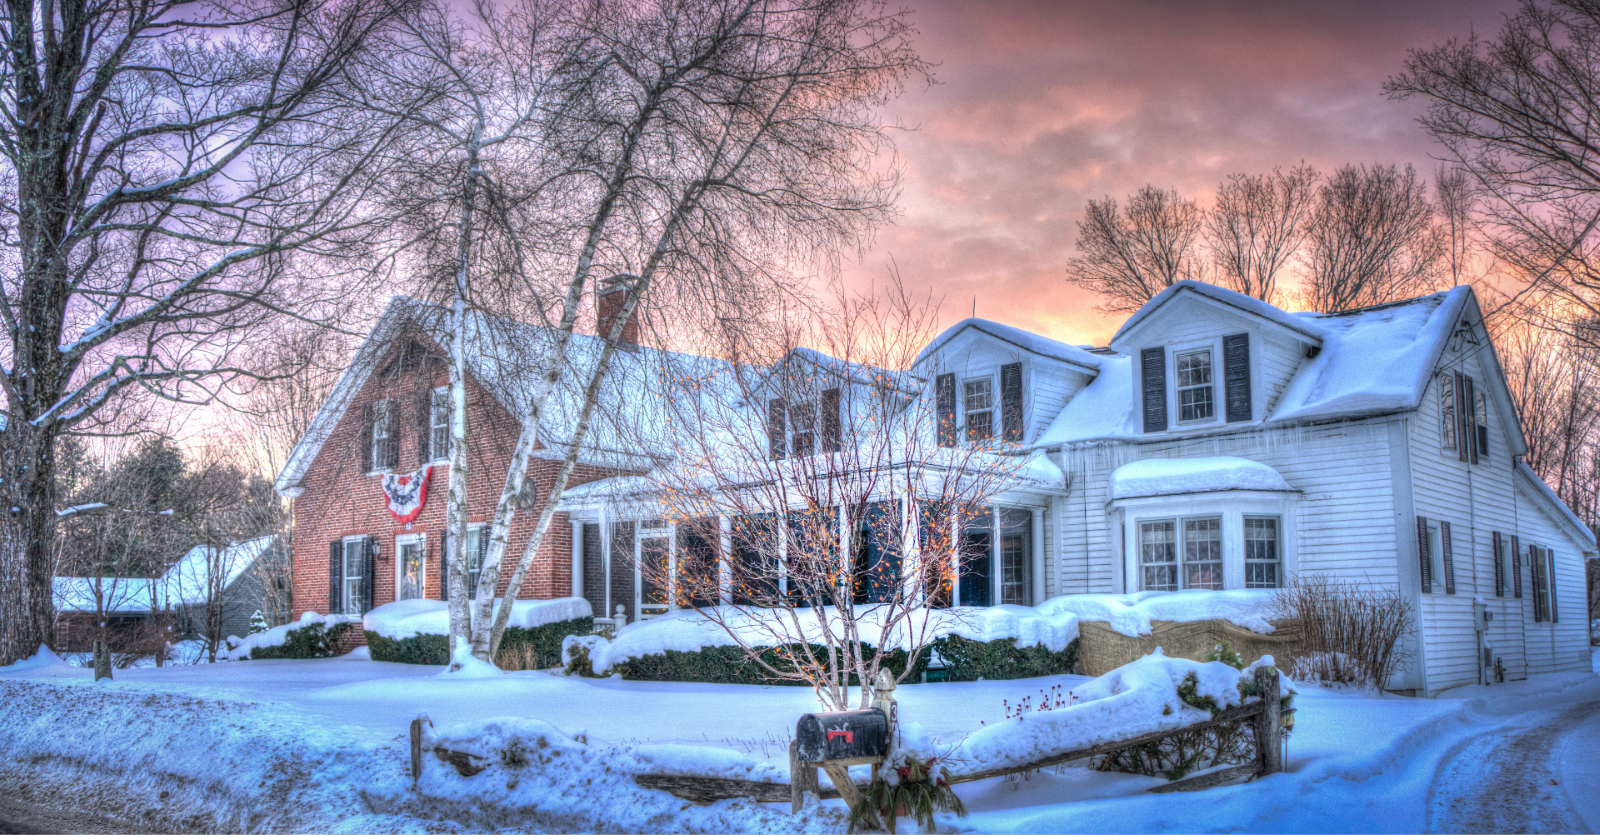 Winter day at sunset with pink and purple hued clouds over a suburban street with new england style homes lining the streets